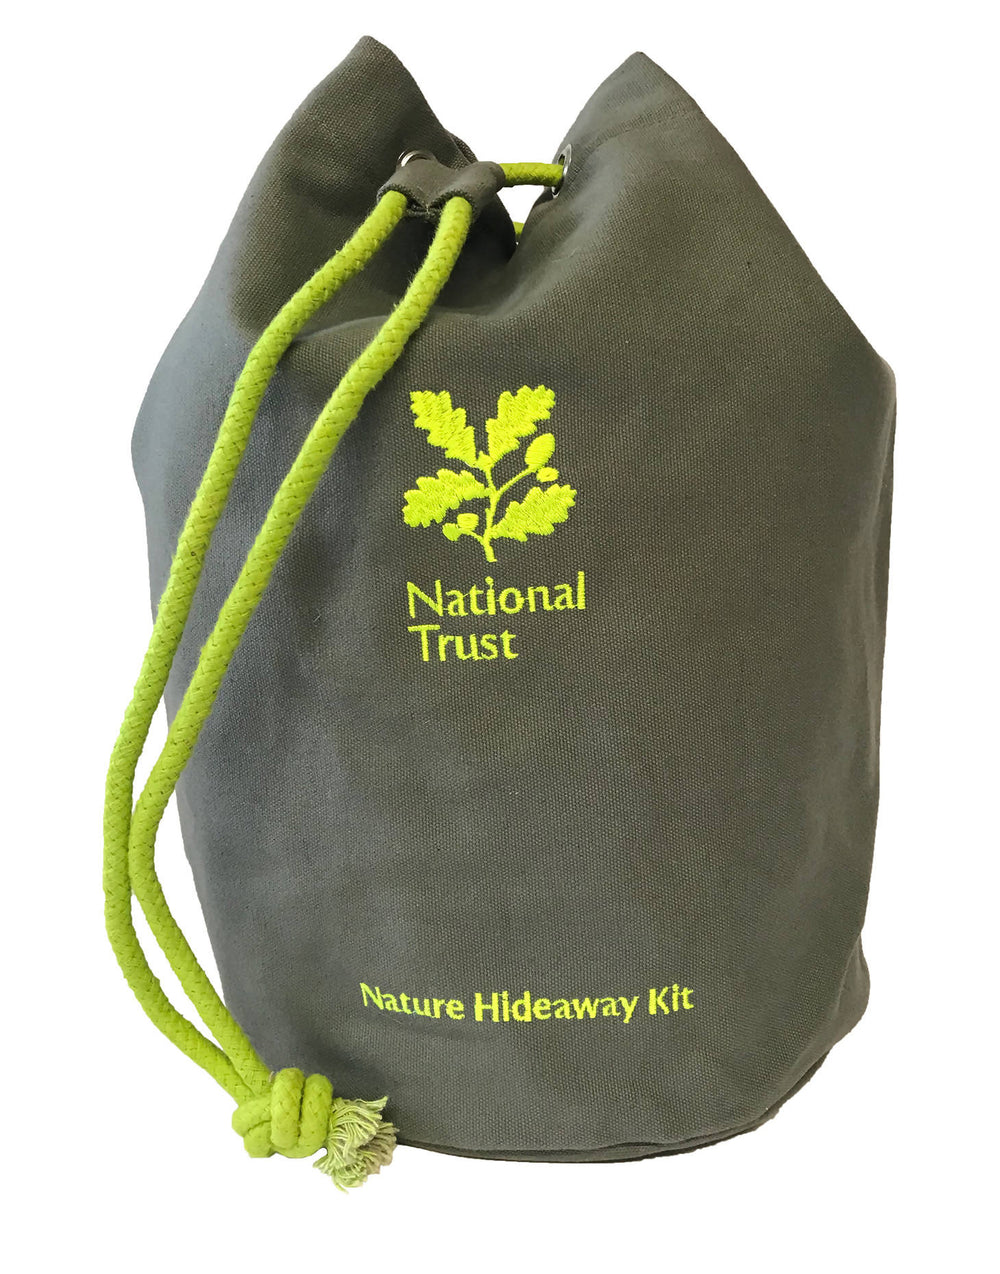 The Nature Hideaway Kit